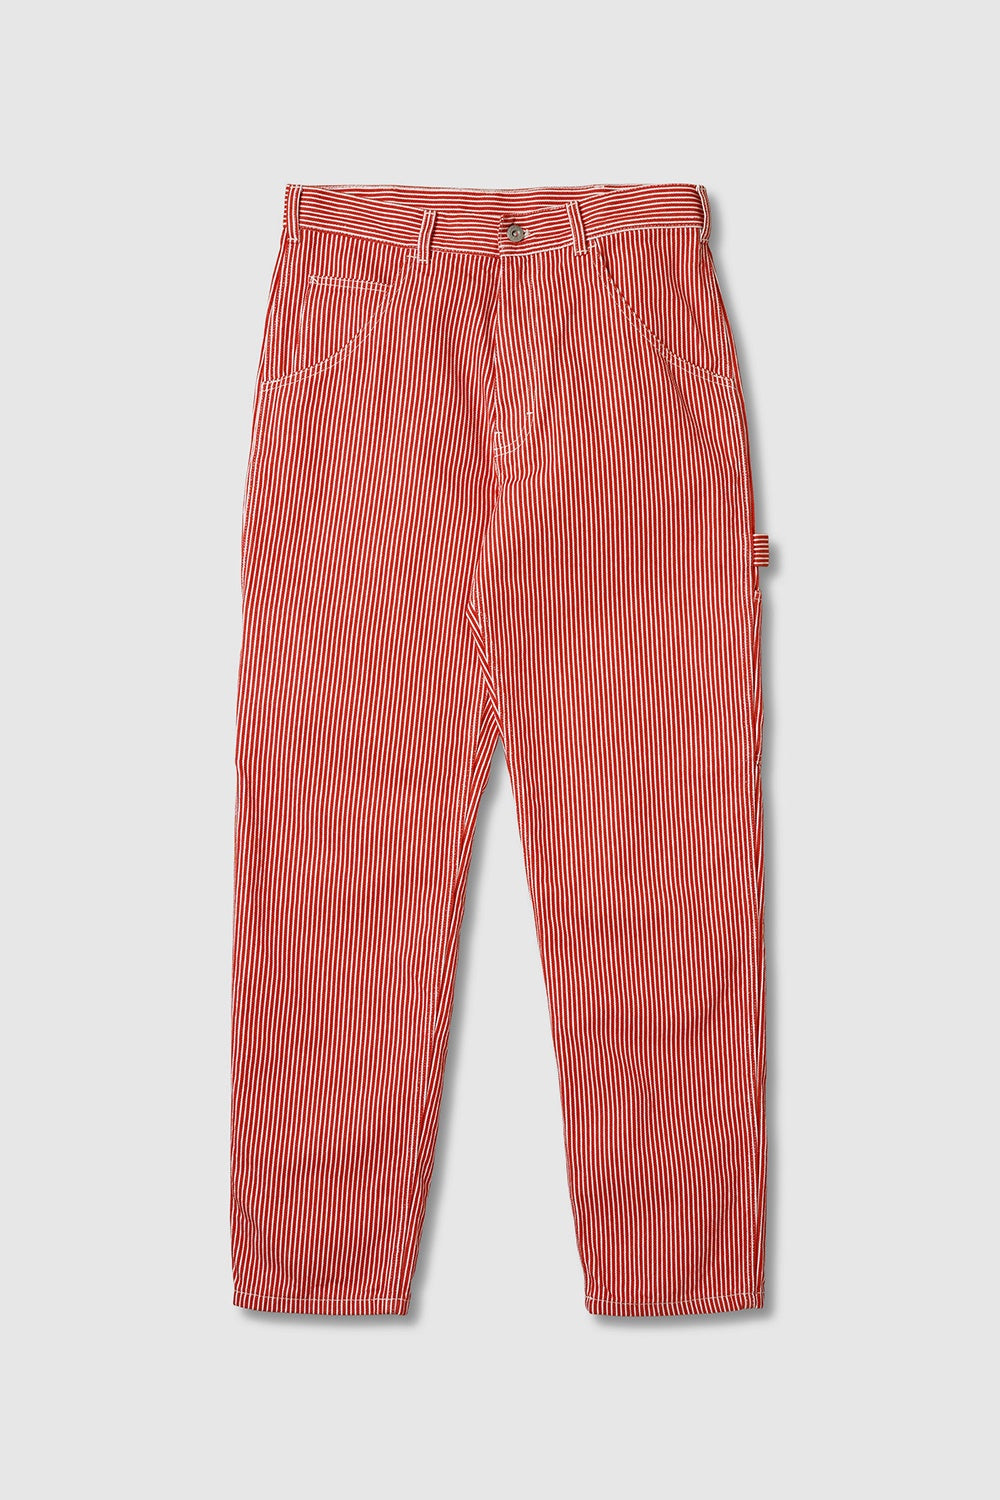 80s Painter Pant - Red Hickory